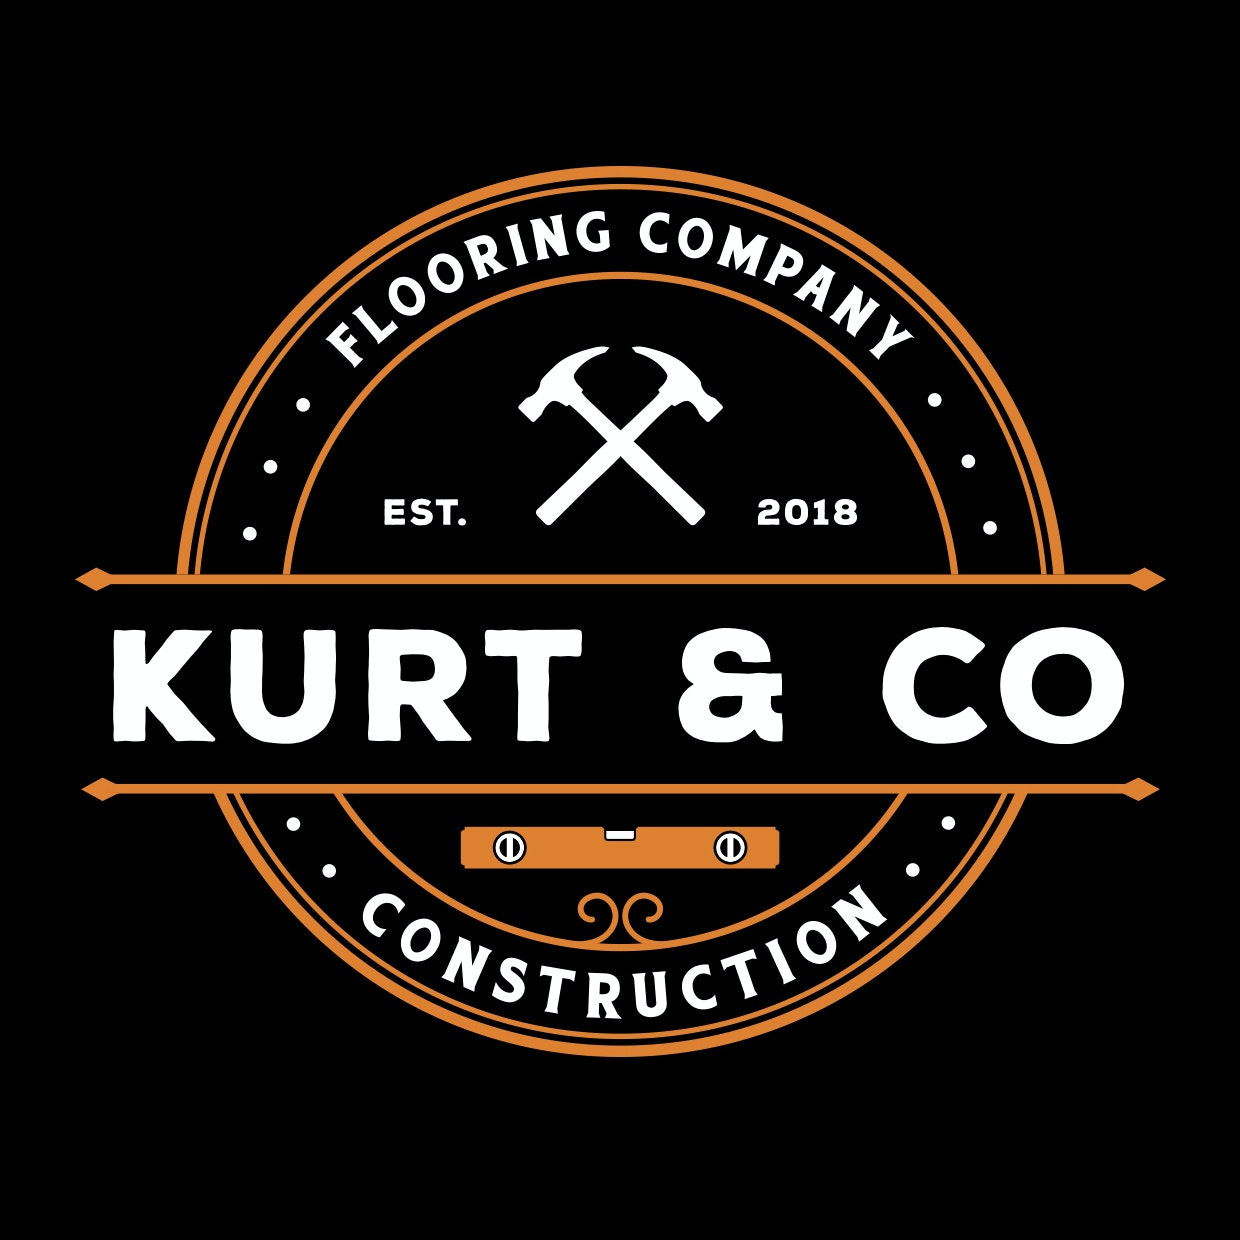 27 construction logo ideas that will help you build a